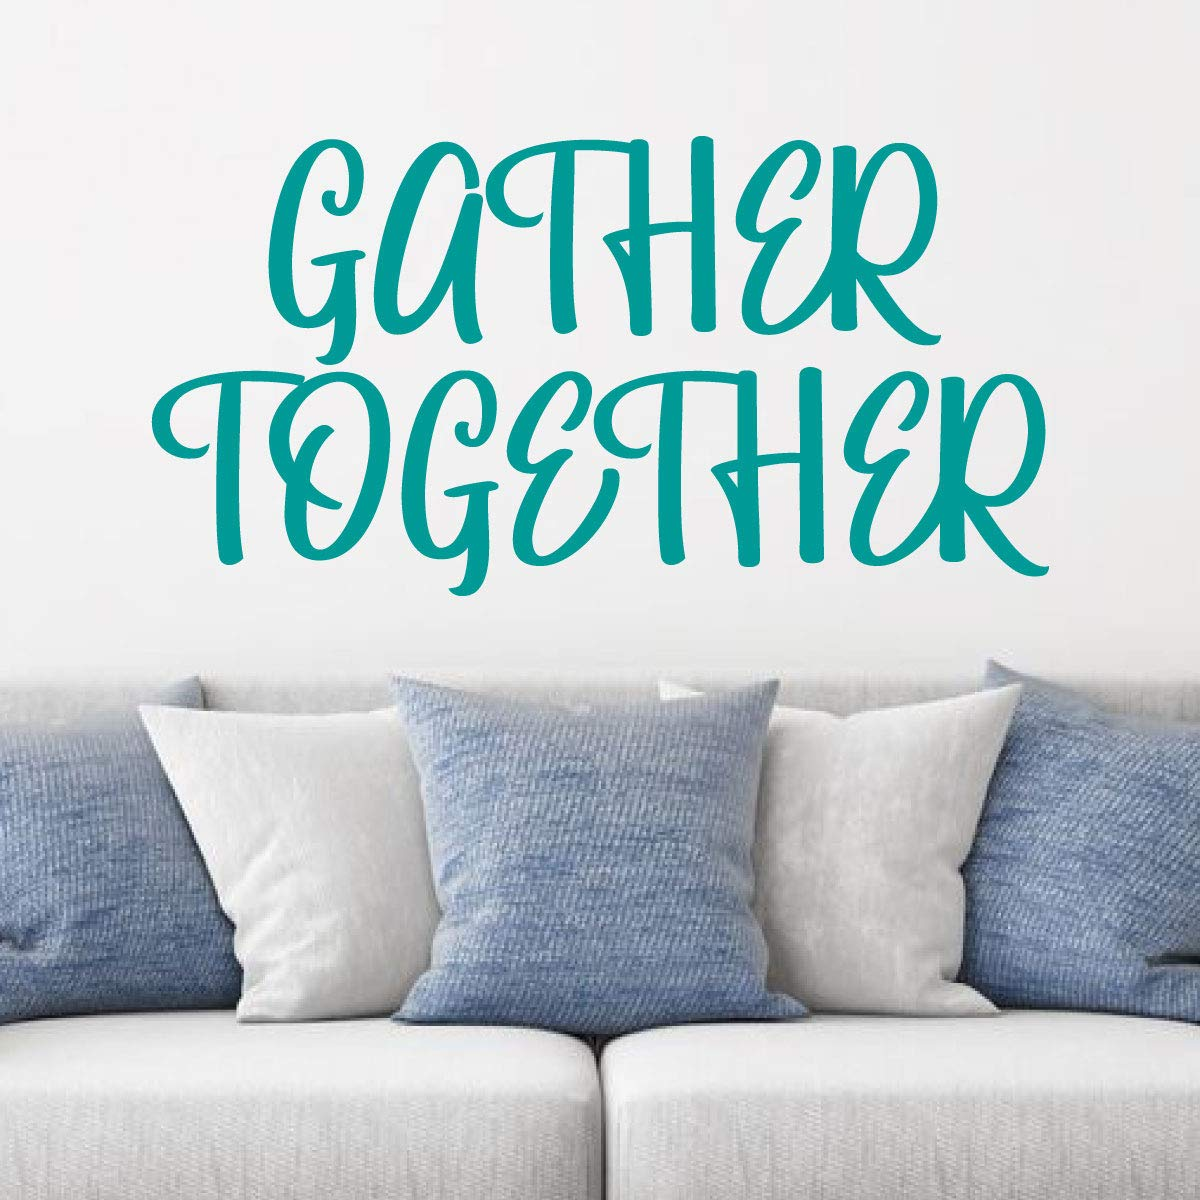 Bedroom or Home D/écor Family Wall Decal A Variety of Sizes and Colors Vinyl Art for Living Room /'Gather Together/'